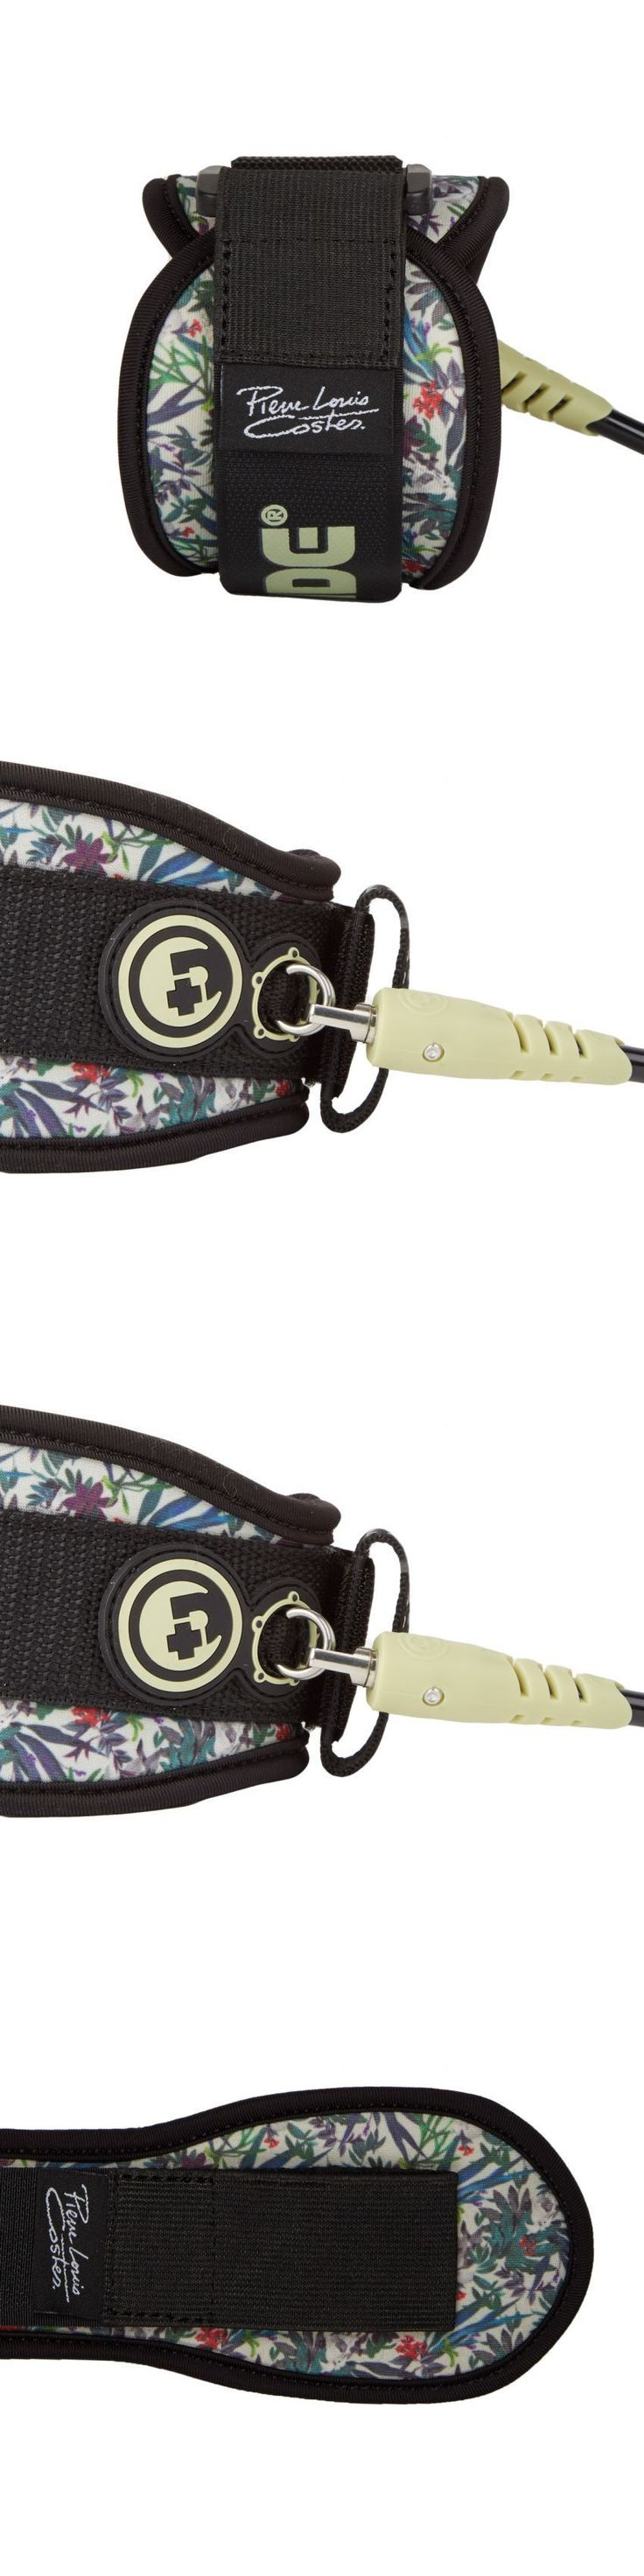 Other Surfing Accessories 71167: New Pride Plc Pierre Louis Costes Bodyboard Bicep Leash New Floral Comp Surf -> BUY IT NOW ONLY: $34.99 on eBay!